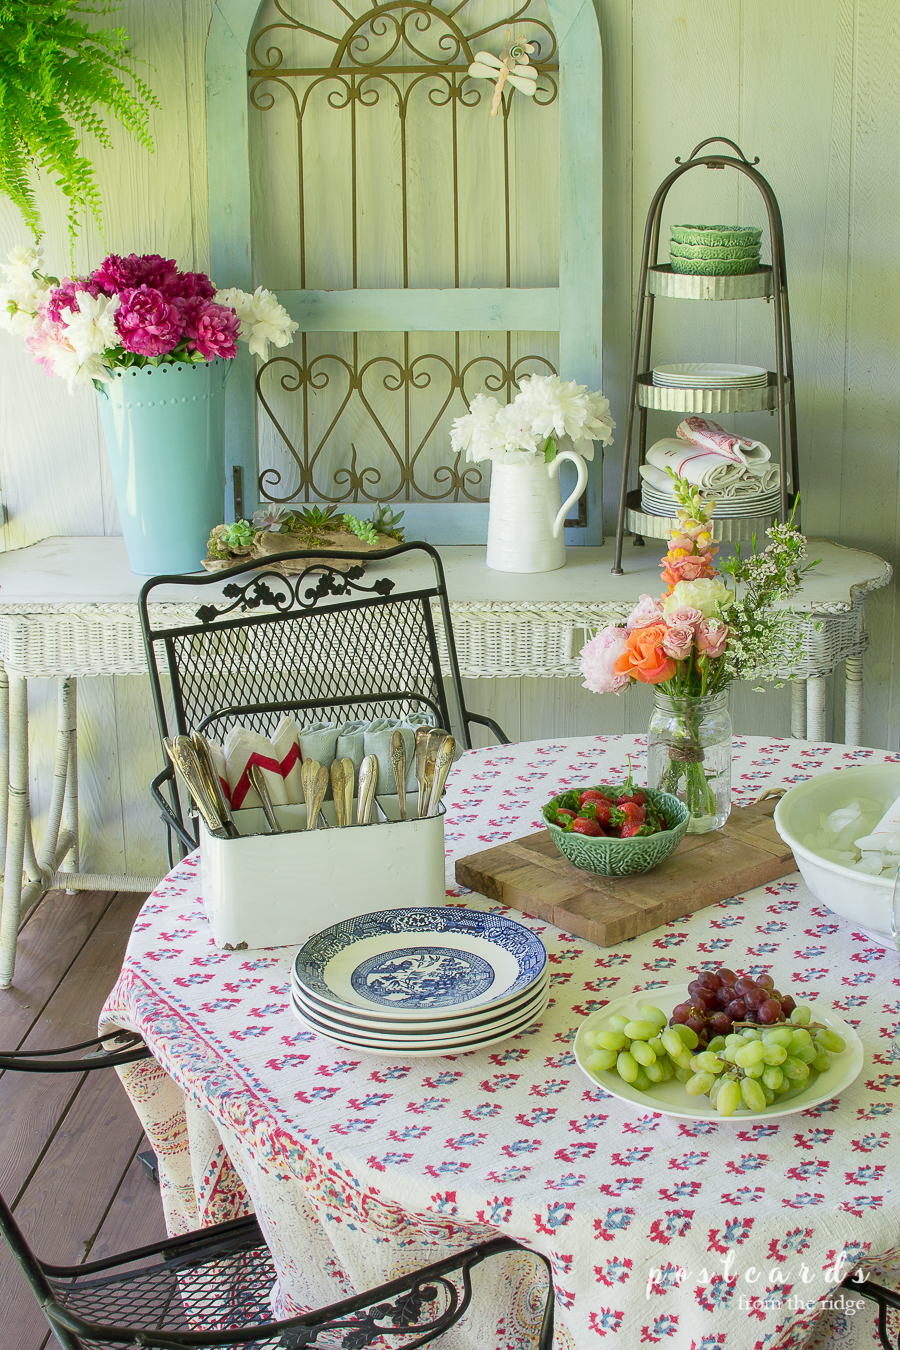 outdoor table with vintage items and flowers